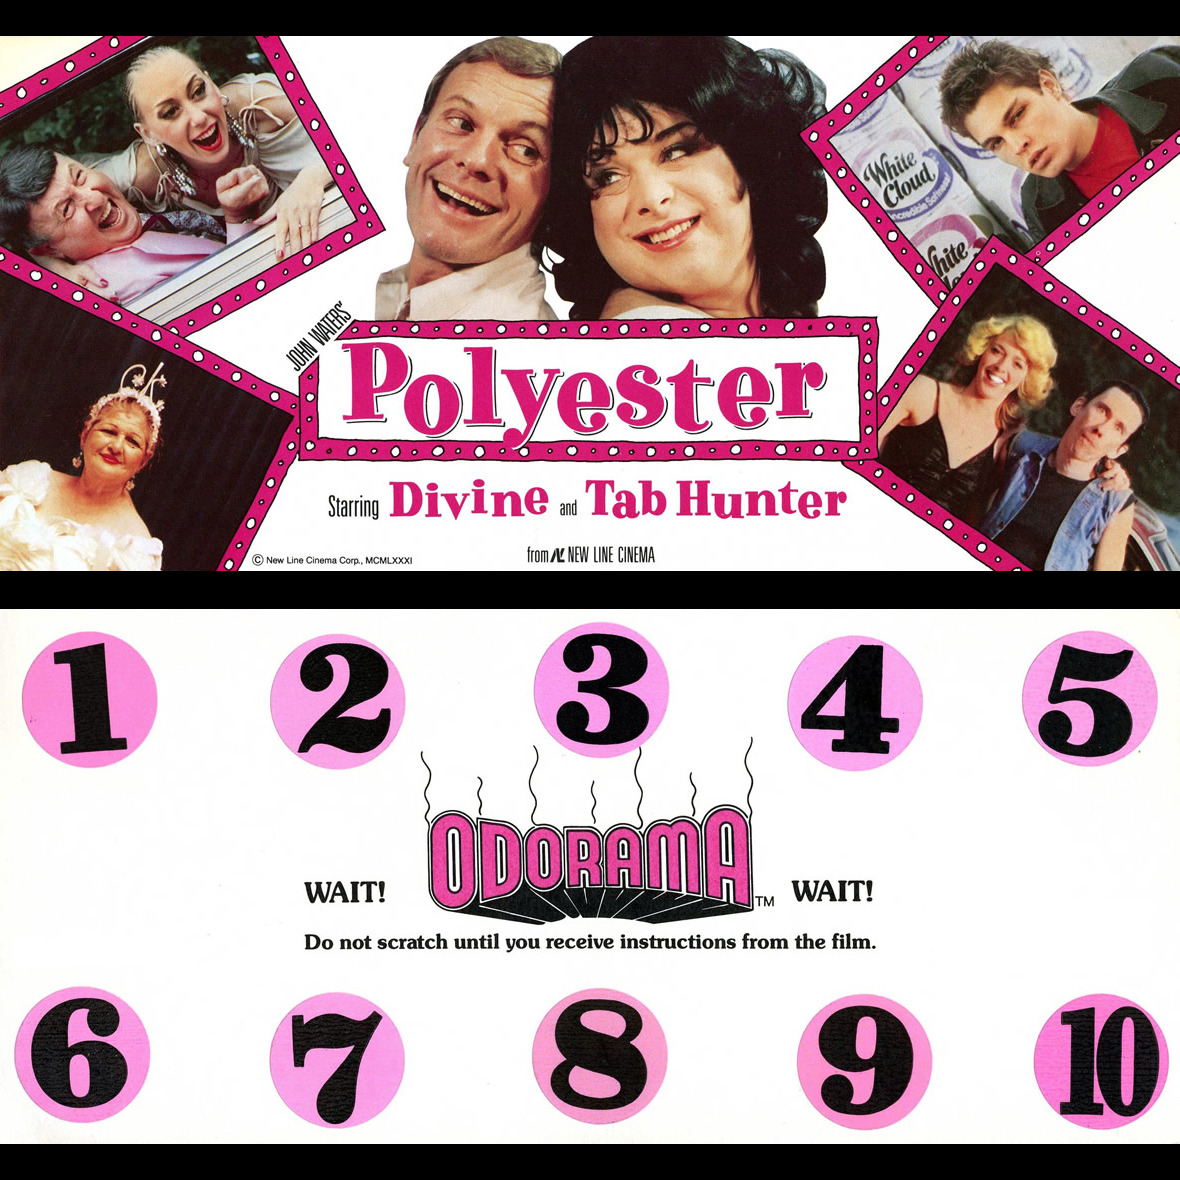 """È un film puzzesco!"" ""Odorama Card"" per il film ""Polyester"" di John Waters (1981)"